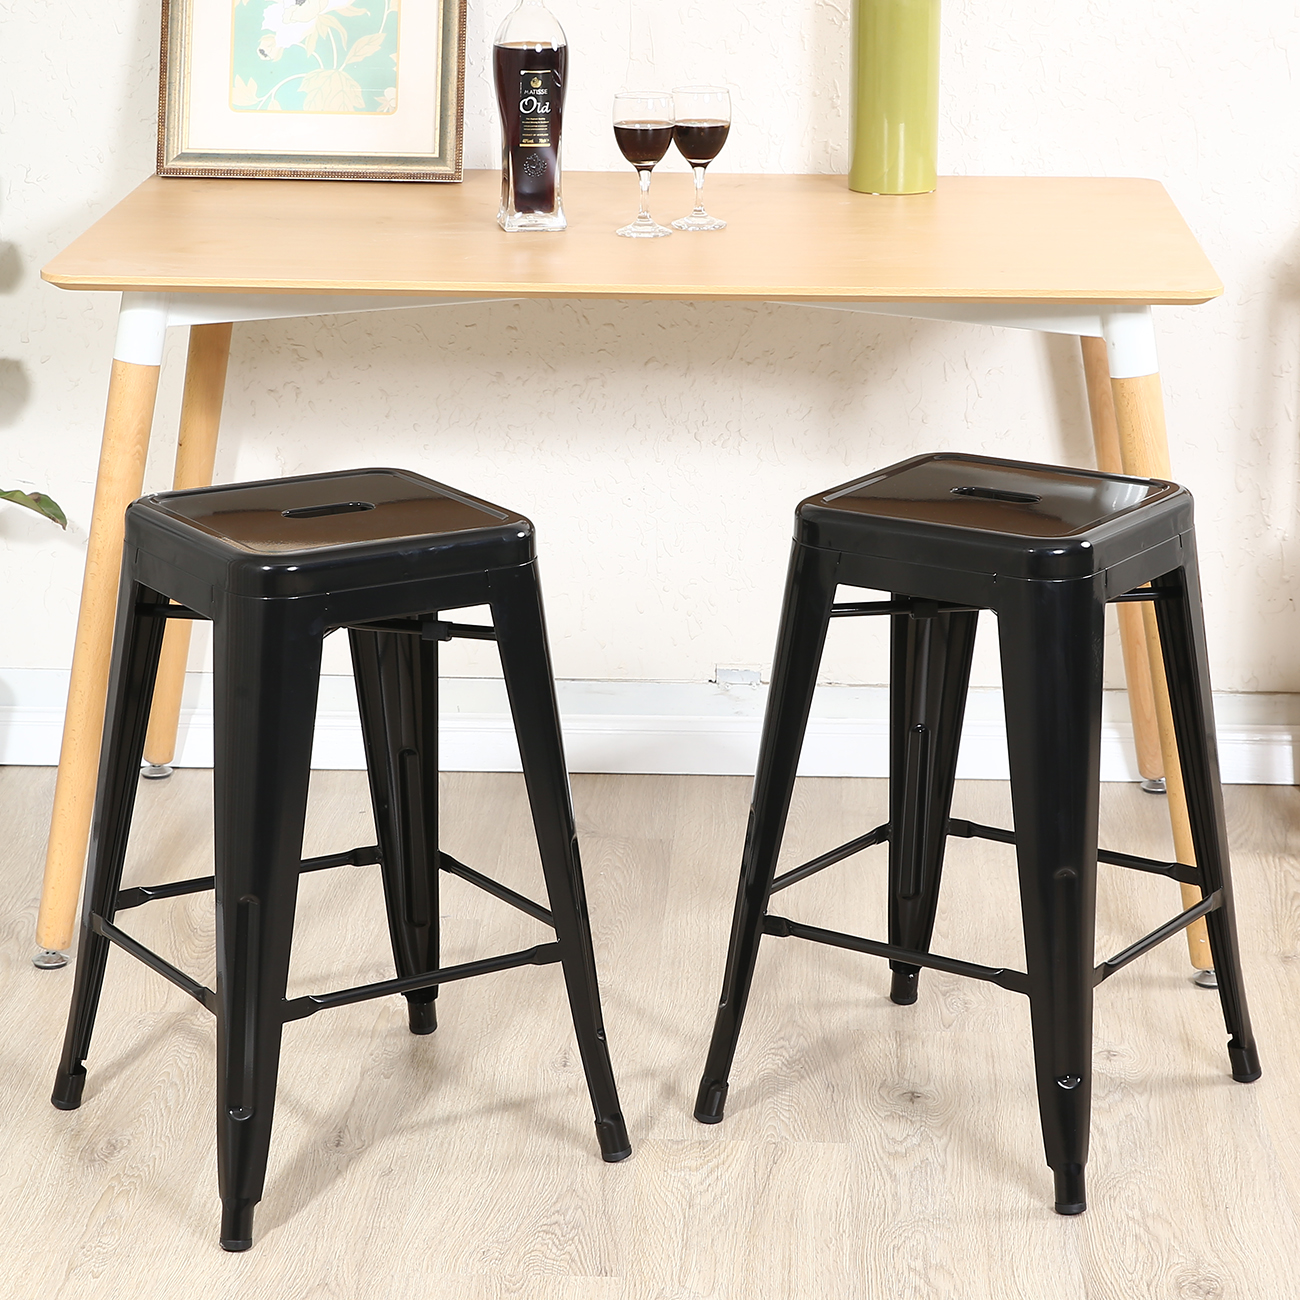 Set Of 2 Metal Bar Stool Counter Height Home 24 26 30 Inch Silver Black Ebay